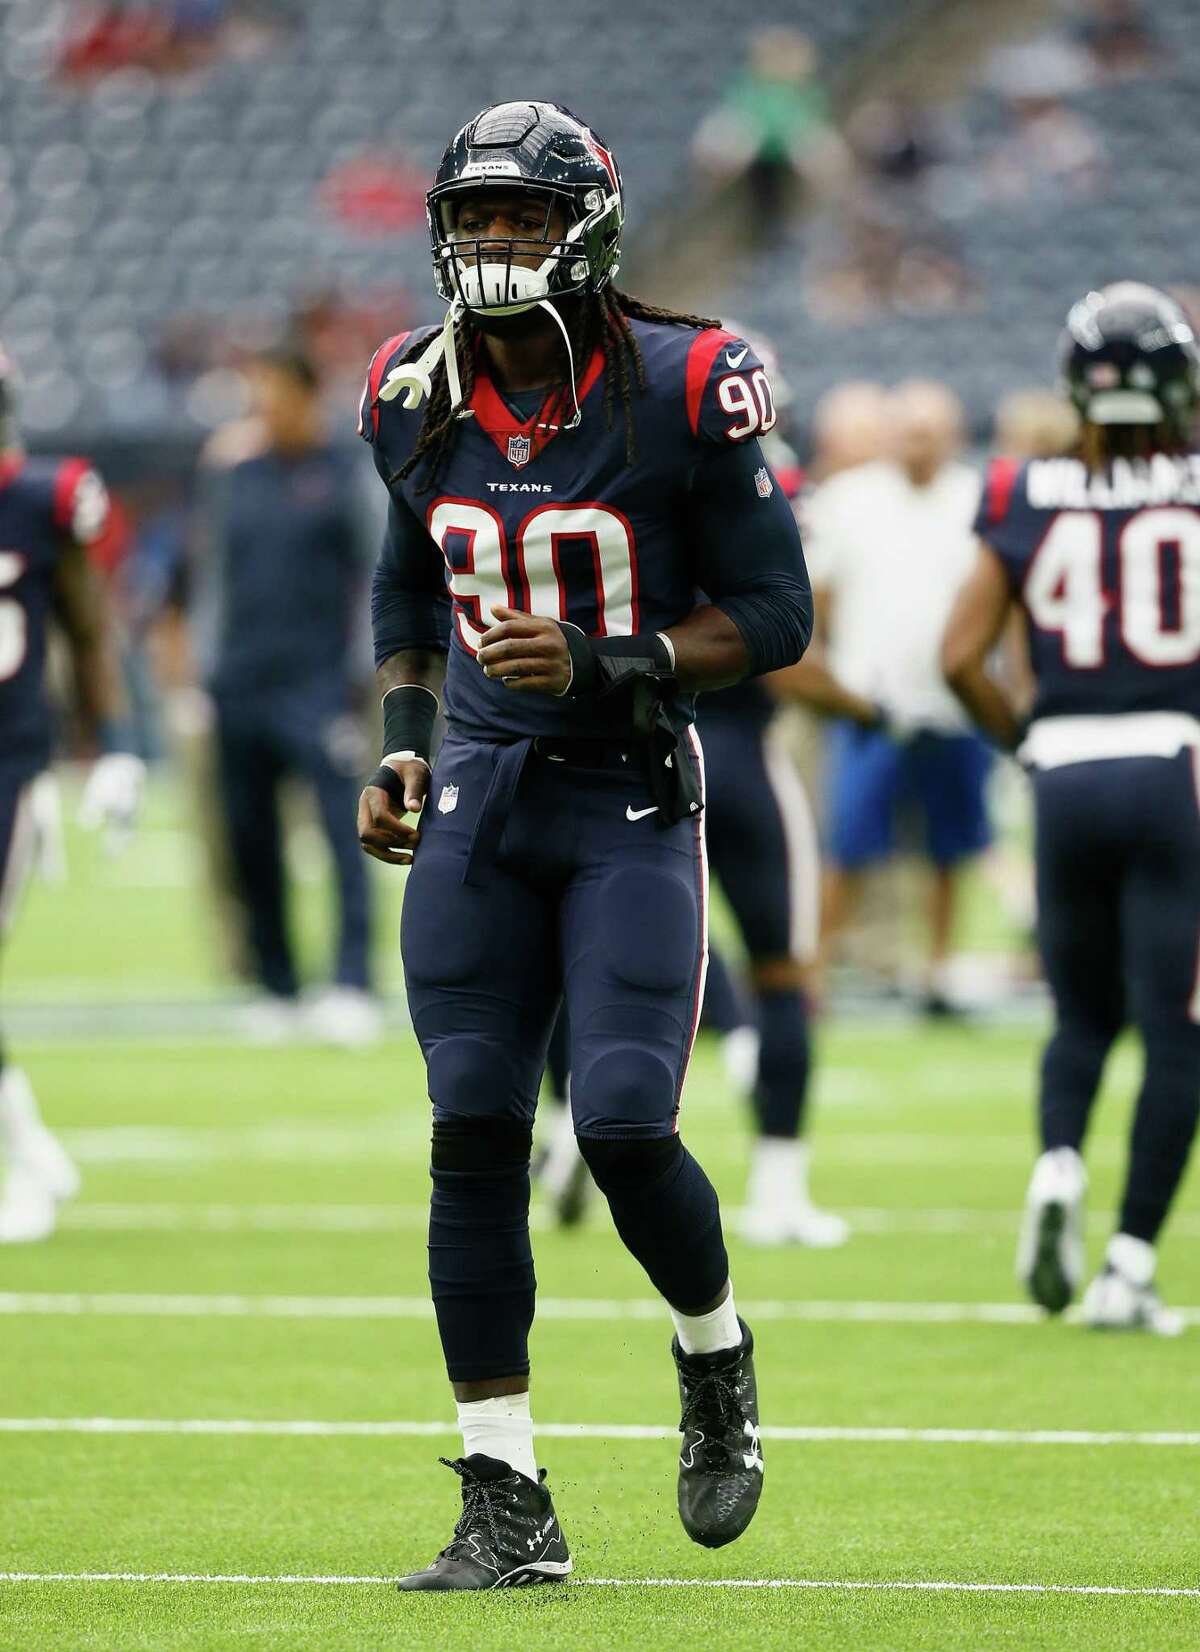 Jadeveon Clowney is one of the Texans' big-name players.